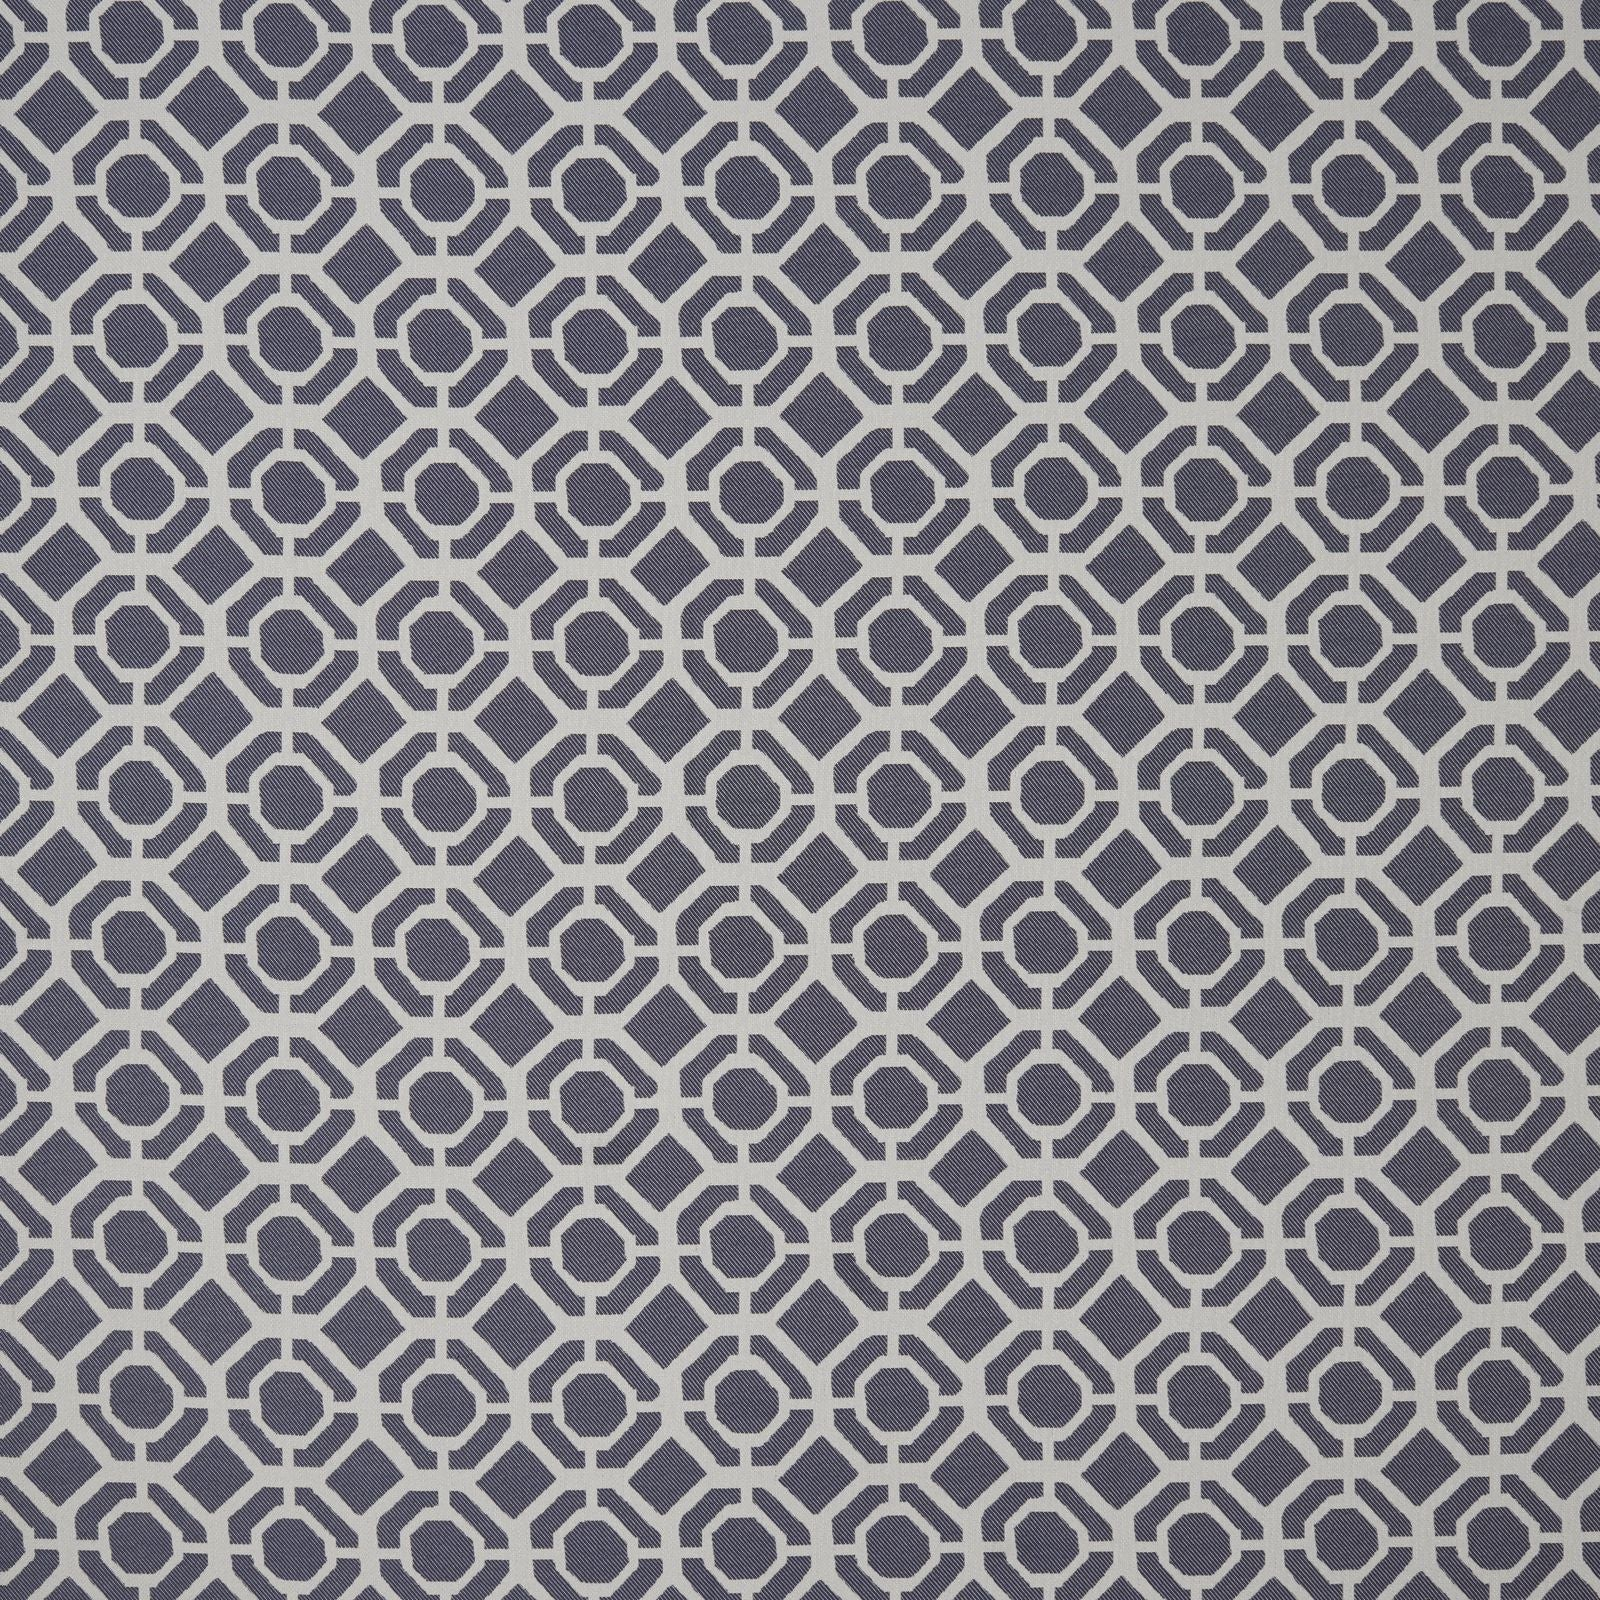 Clarke & Clarke Designer 'Castello' Cushion | Indigo Two Tone Geometric Design